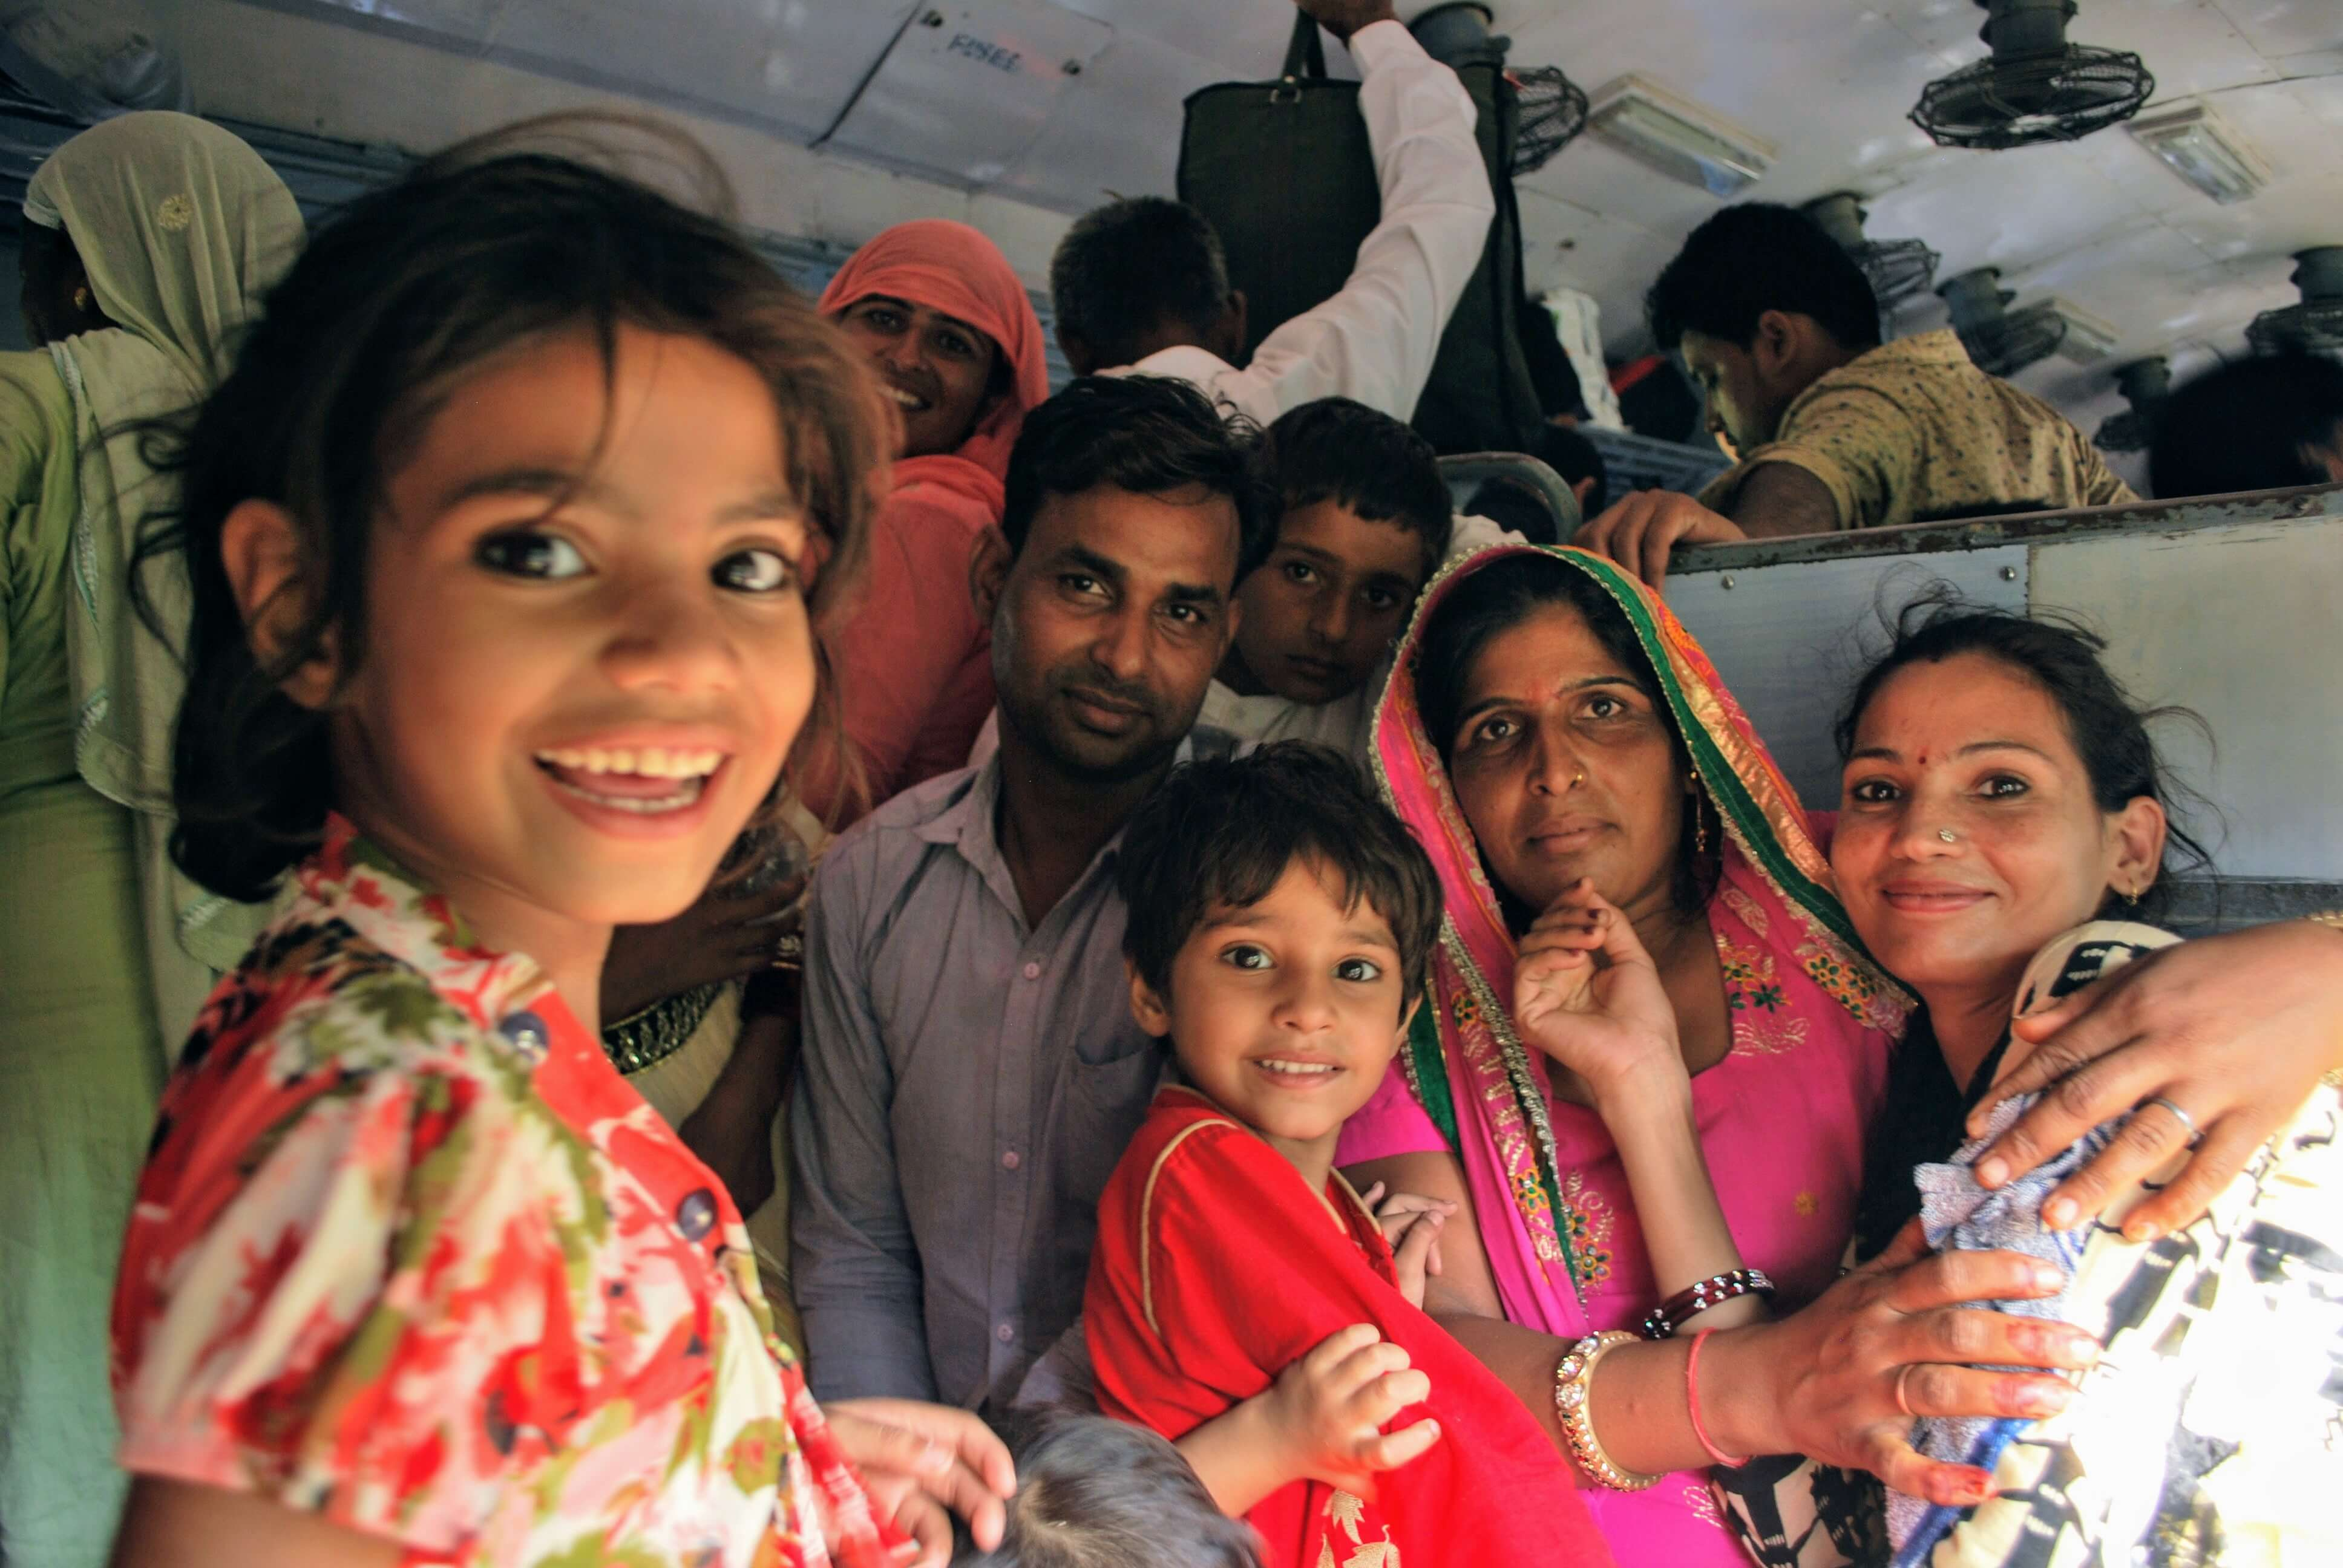 Travel on a budget - train travel in India